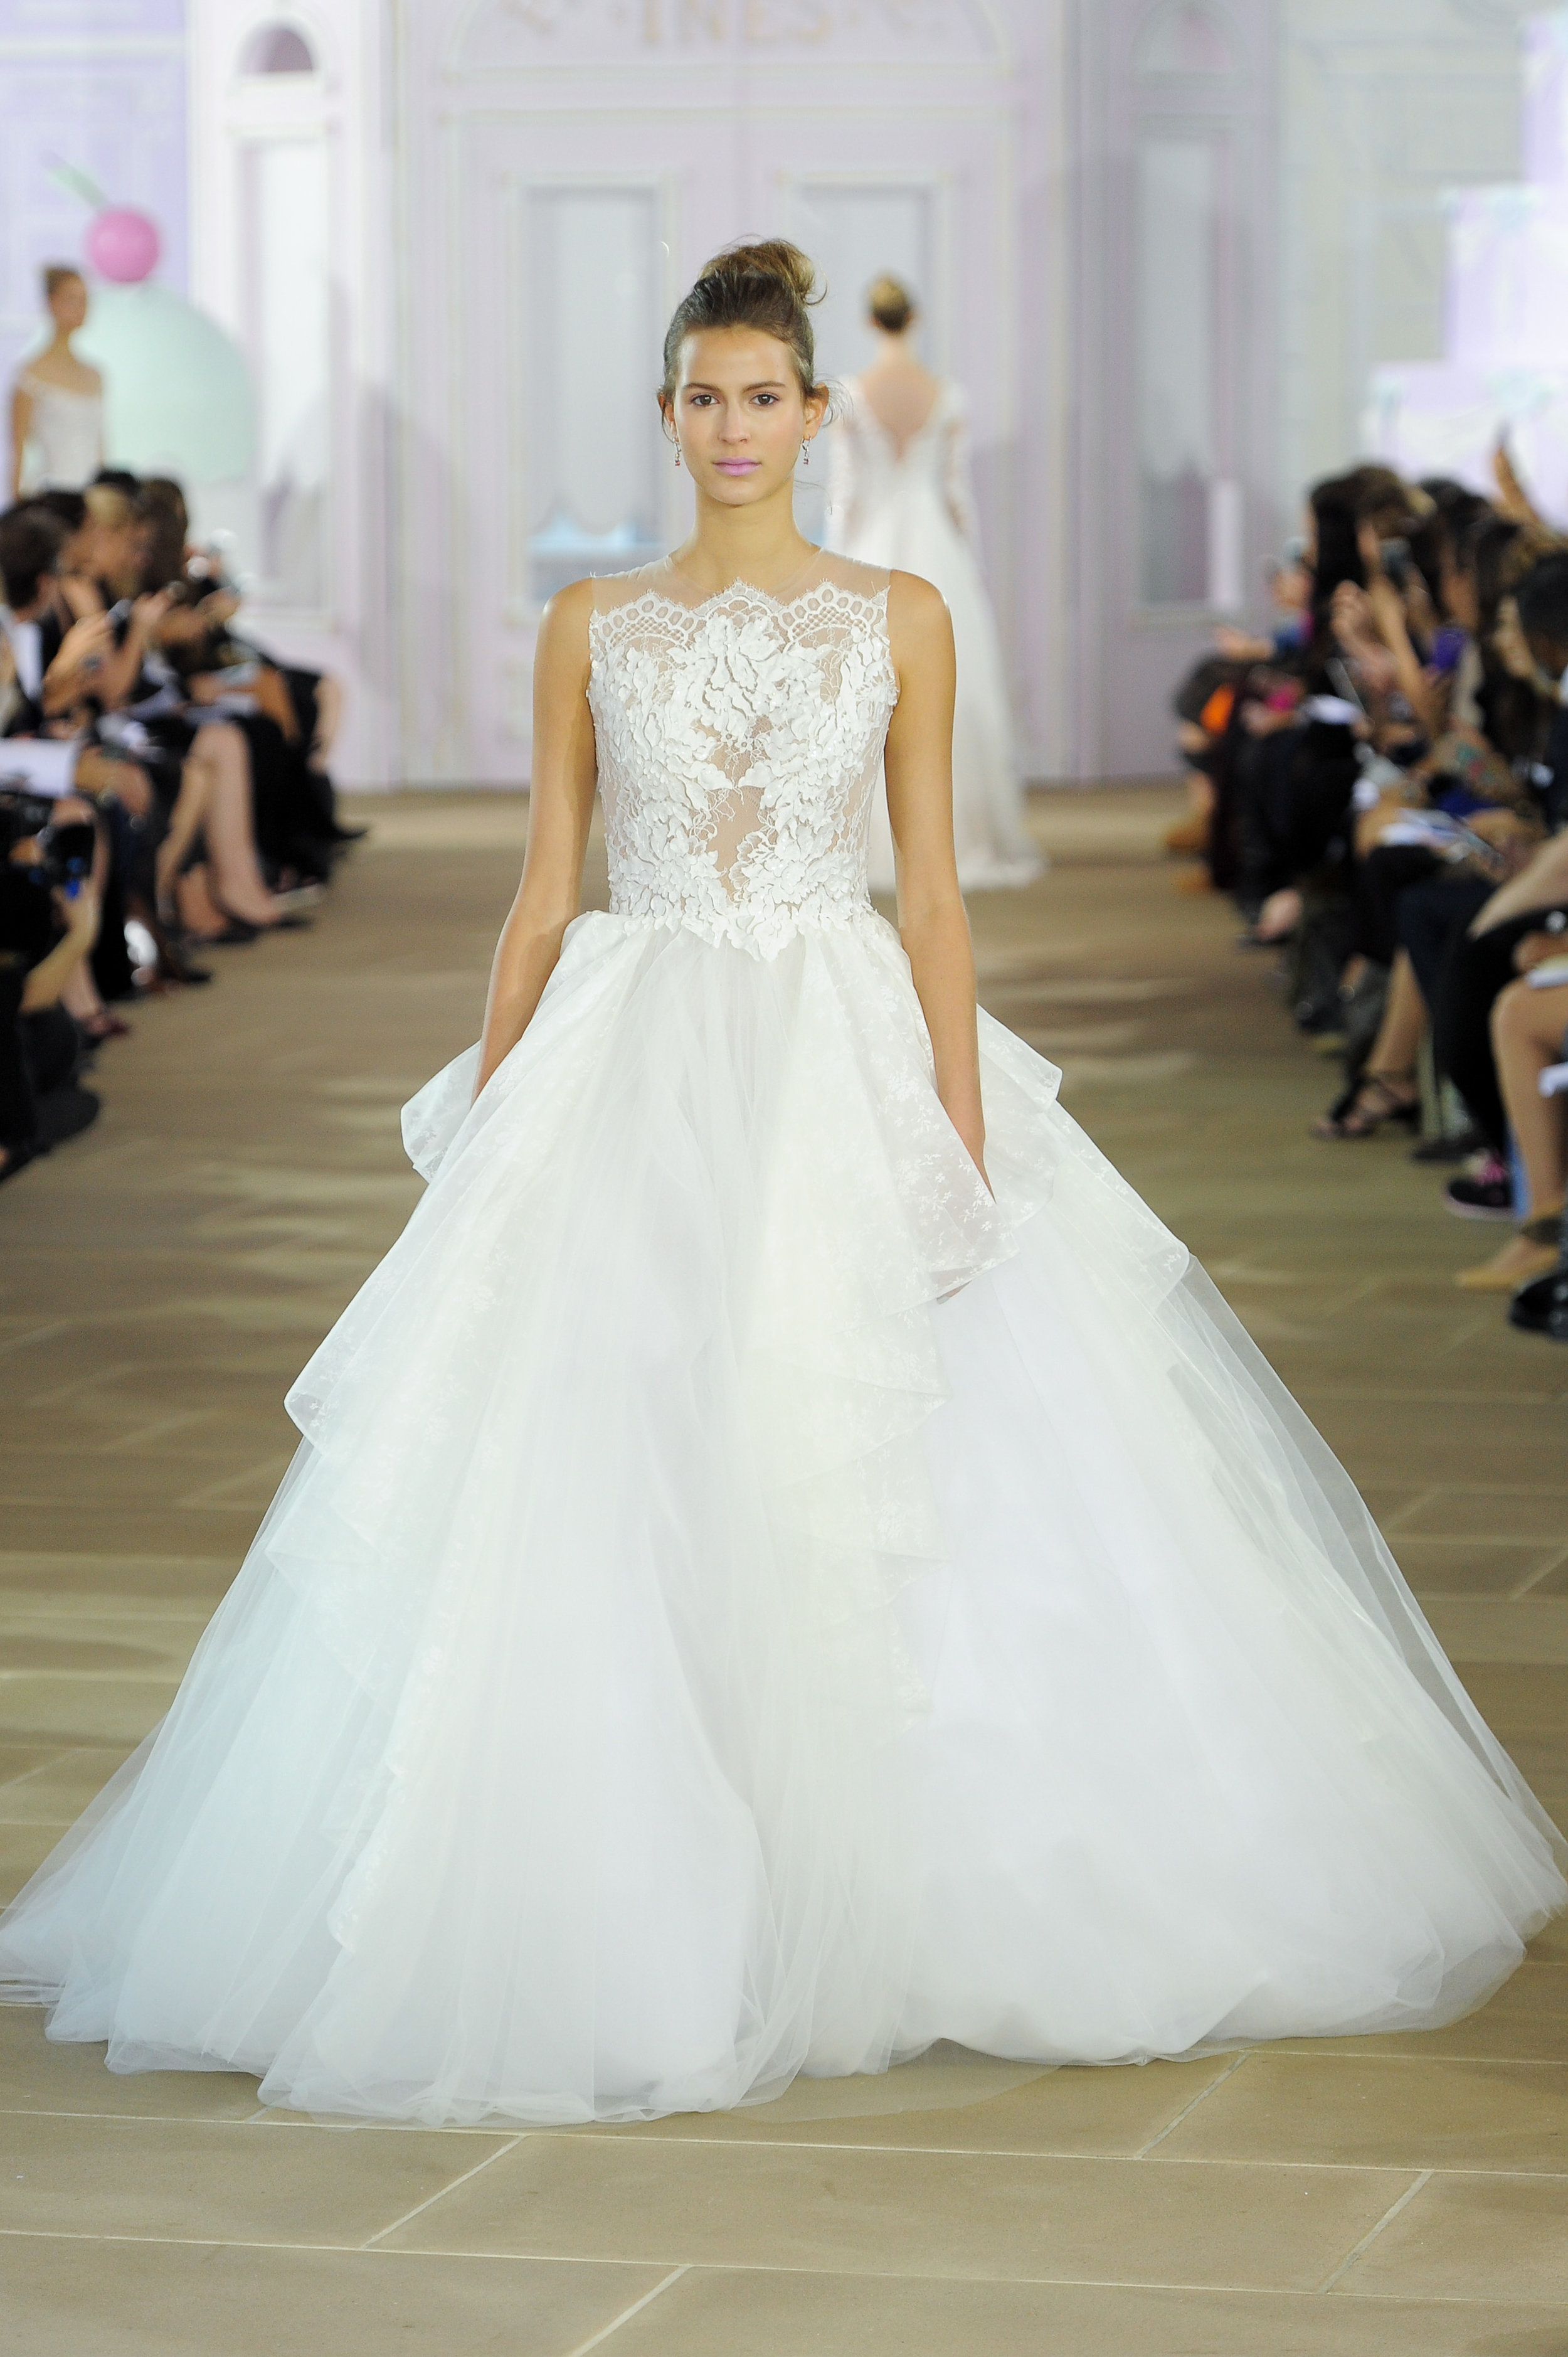 'Souffle' - sleeveless tulle ball gown with illusion bodice and back, lace appliqués and cascading tulle skirt and train.